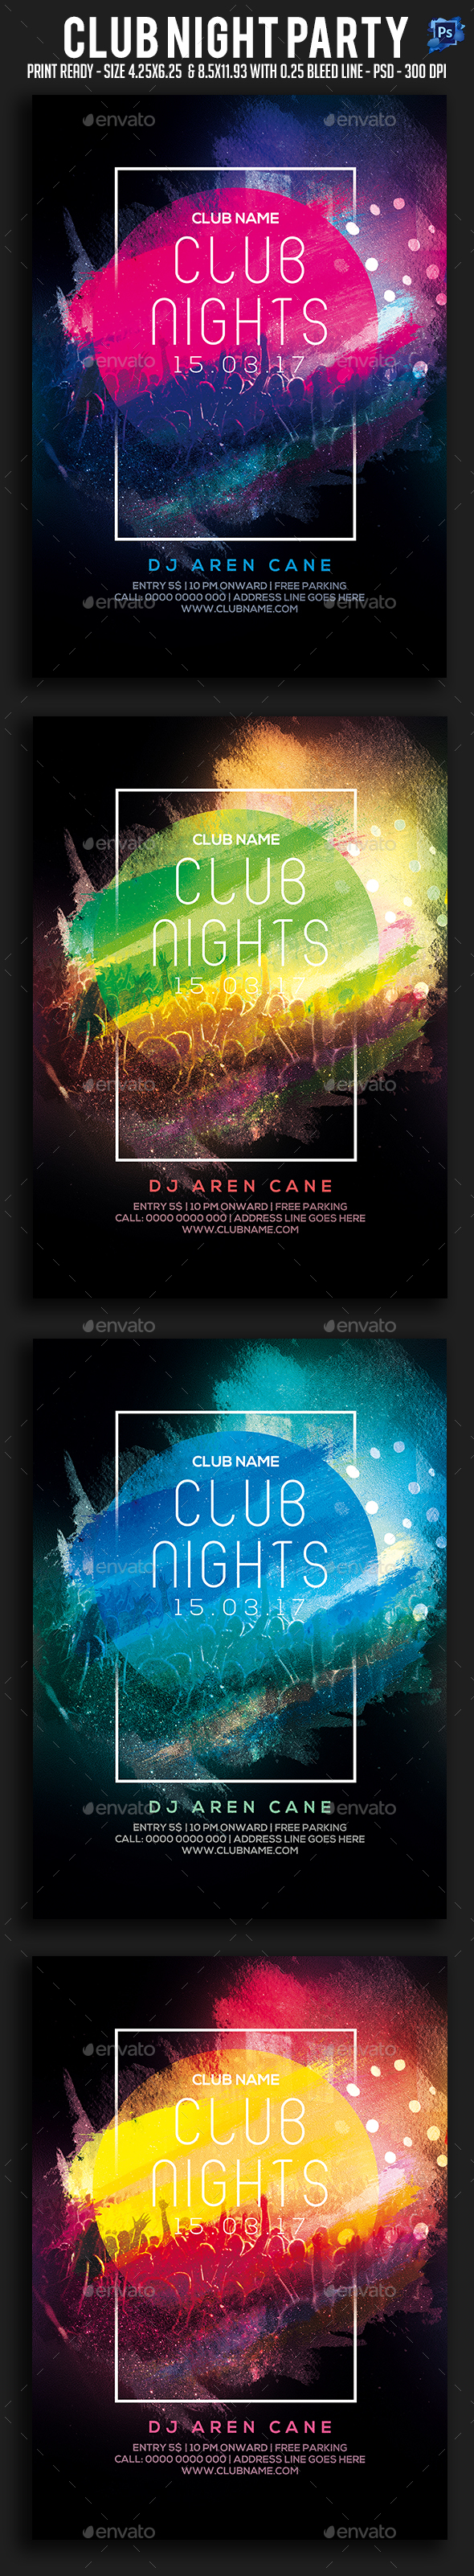 GraphicRiver Club Night Party Flyer 20787519